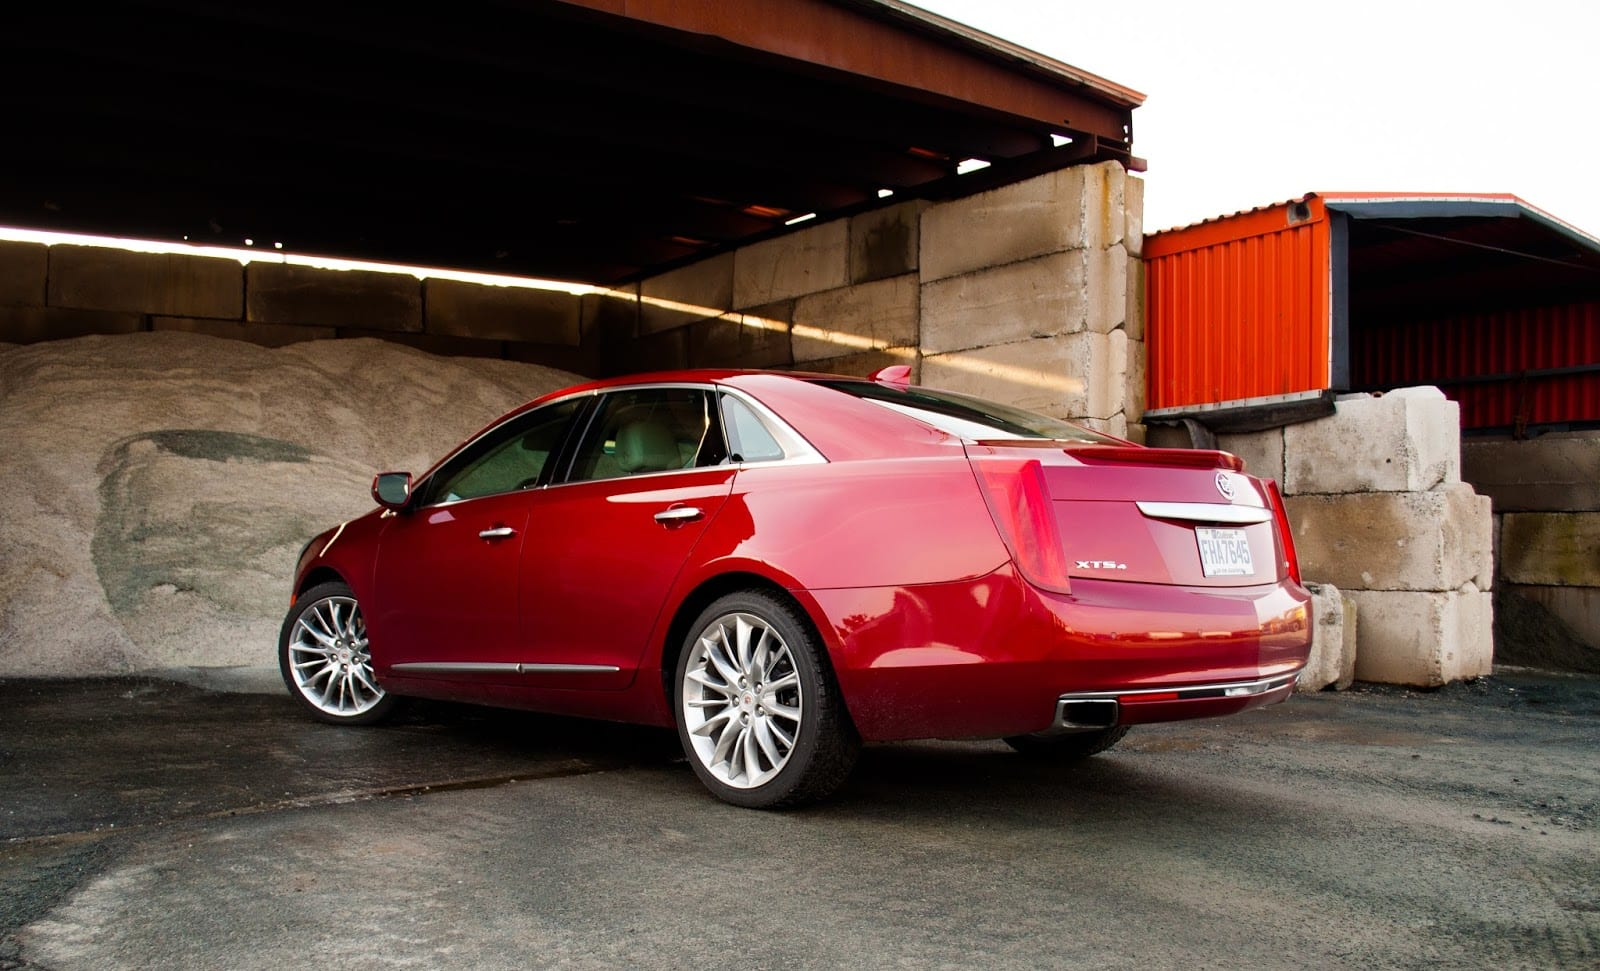 2015 Cadillac Xts Vsport Review Strangely Good Predictably Unpopular Gcbc